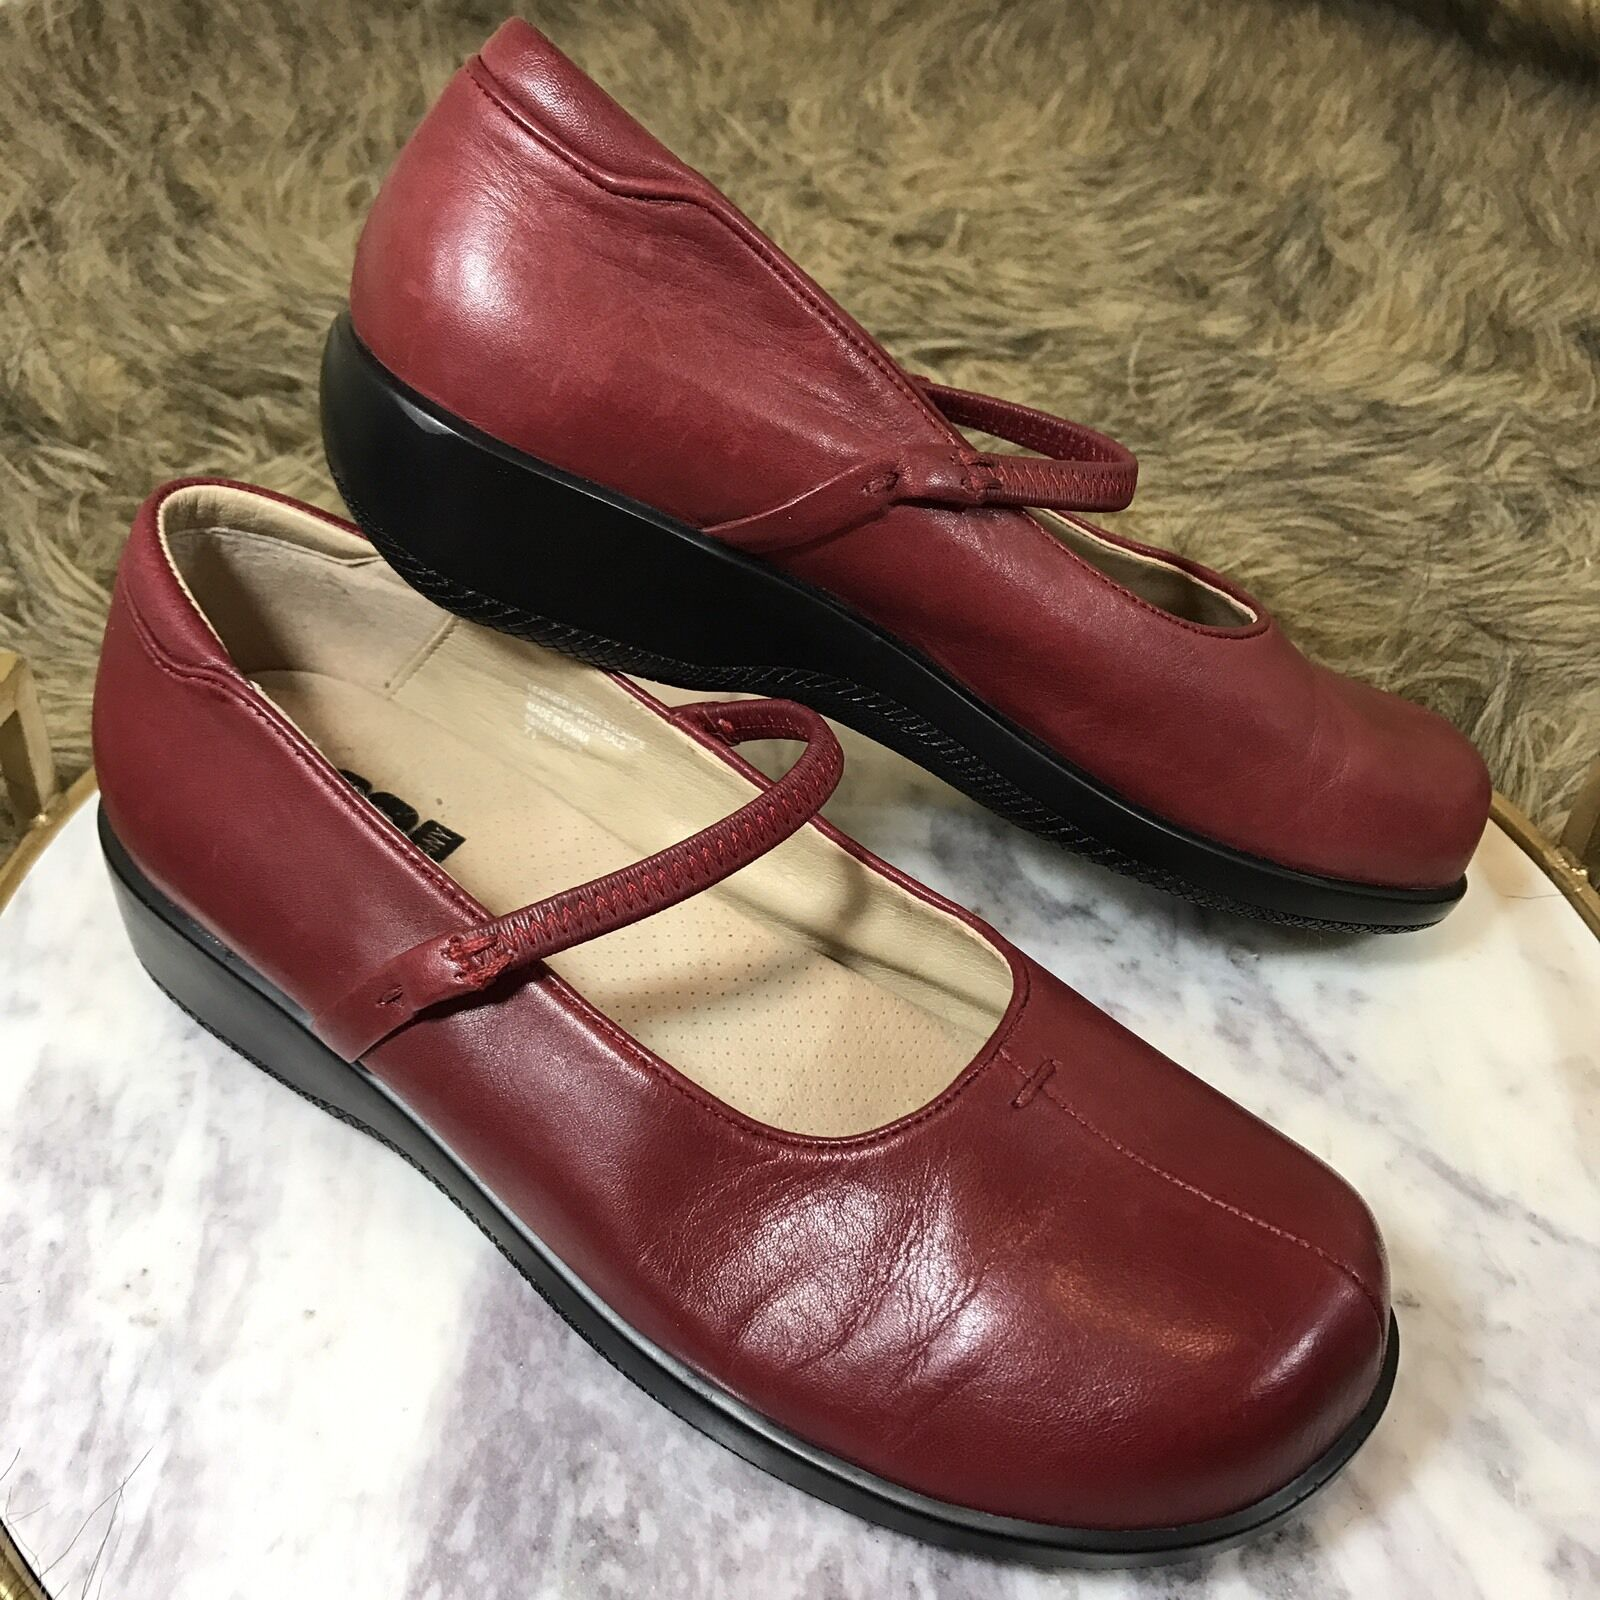 KB & Company Women's Leather Sz 7.5 M Red Leather Women's Mary Jane Career Comfort Loafers Flats 13ab05